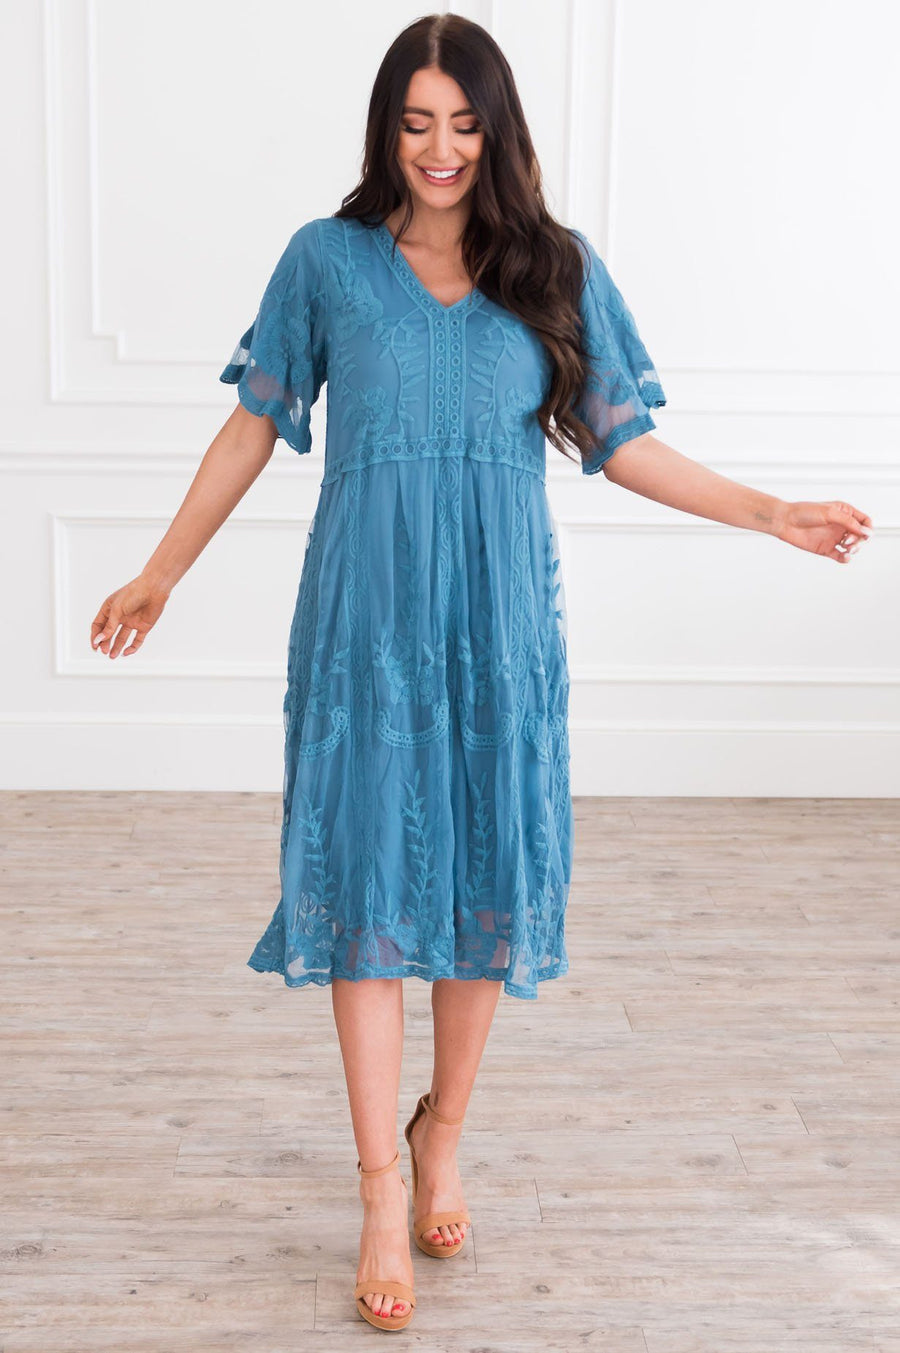 The Paizley Boho Dress